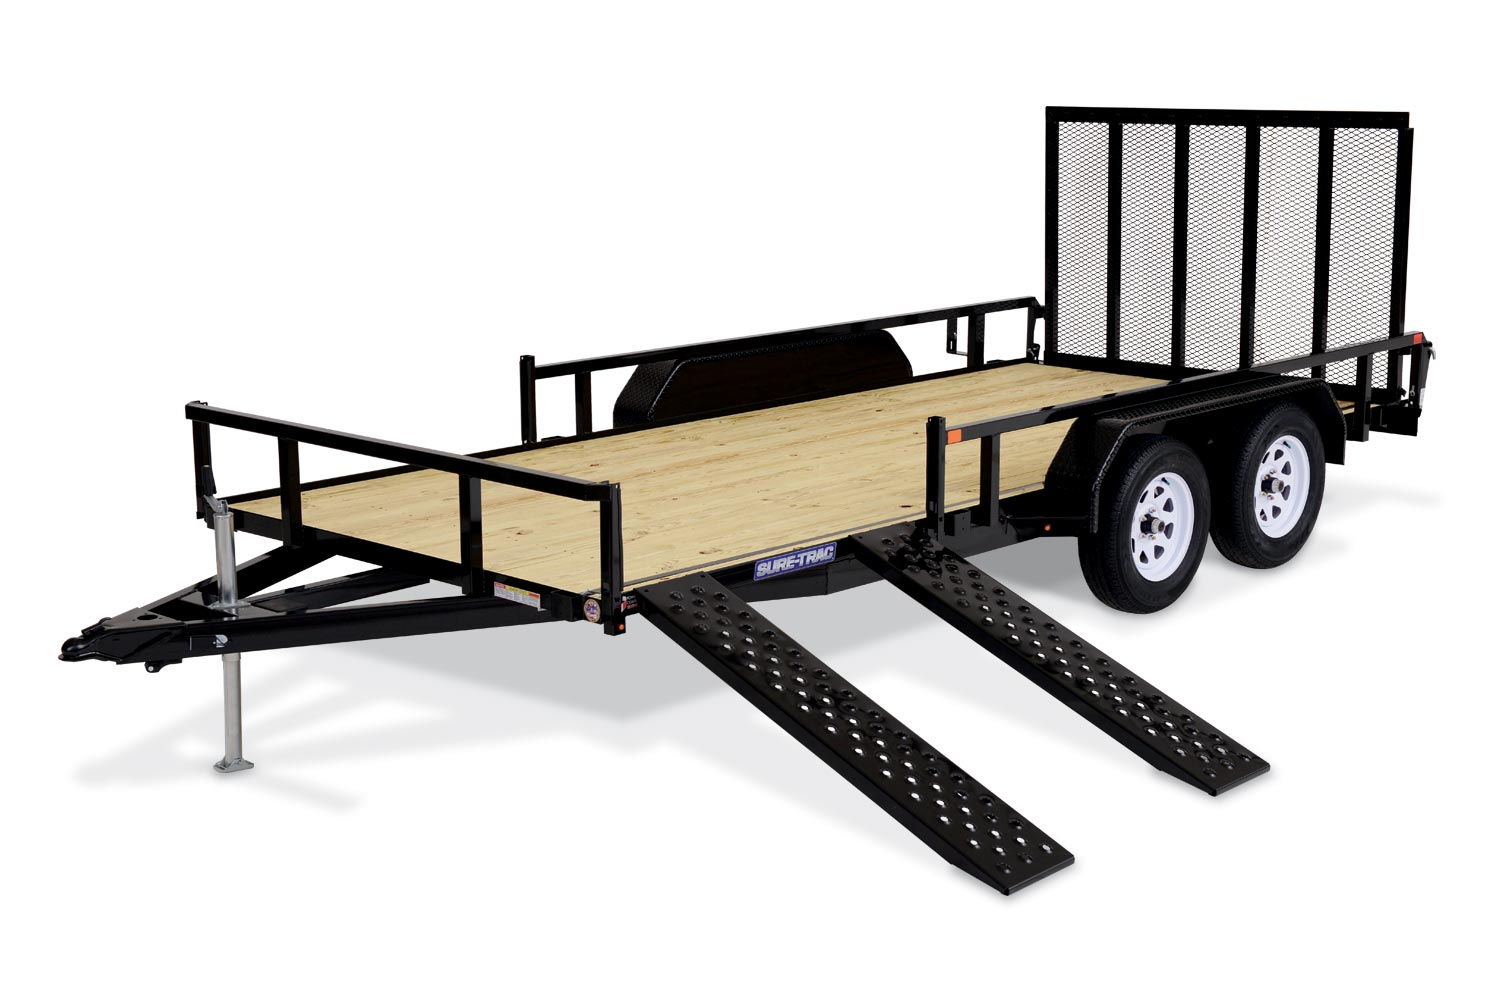 Specials | Utility Flatbed Trailers in WV | Dump Trailers and ... on utility brick, utility carpet, utility construction, utility heater,